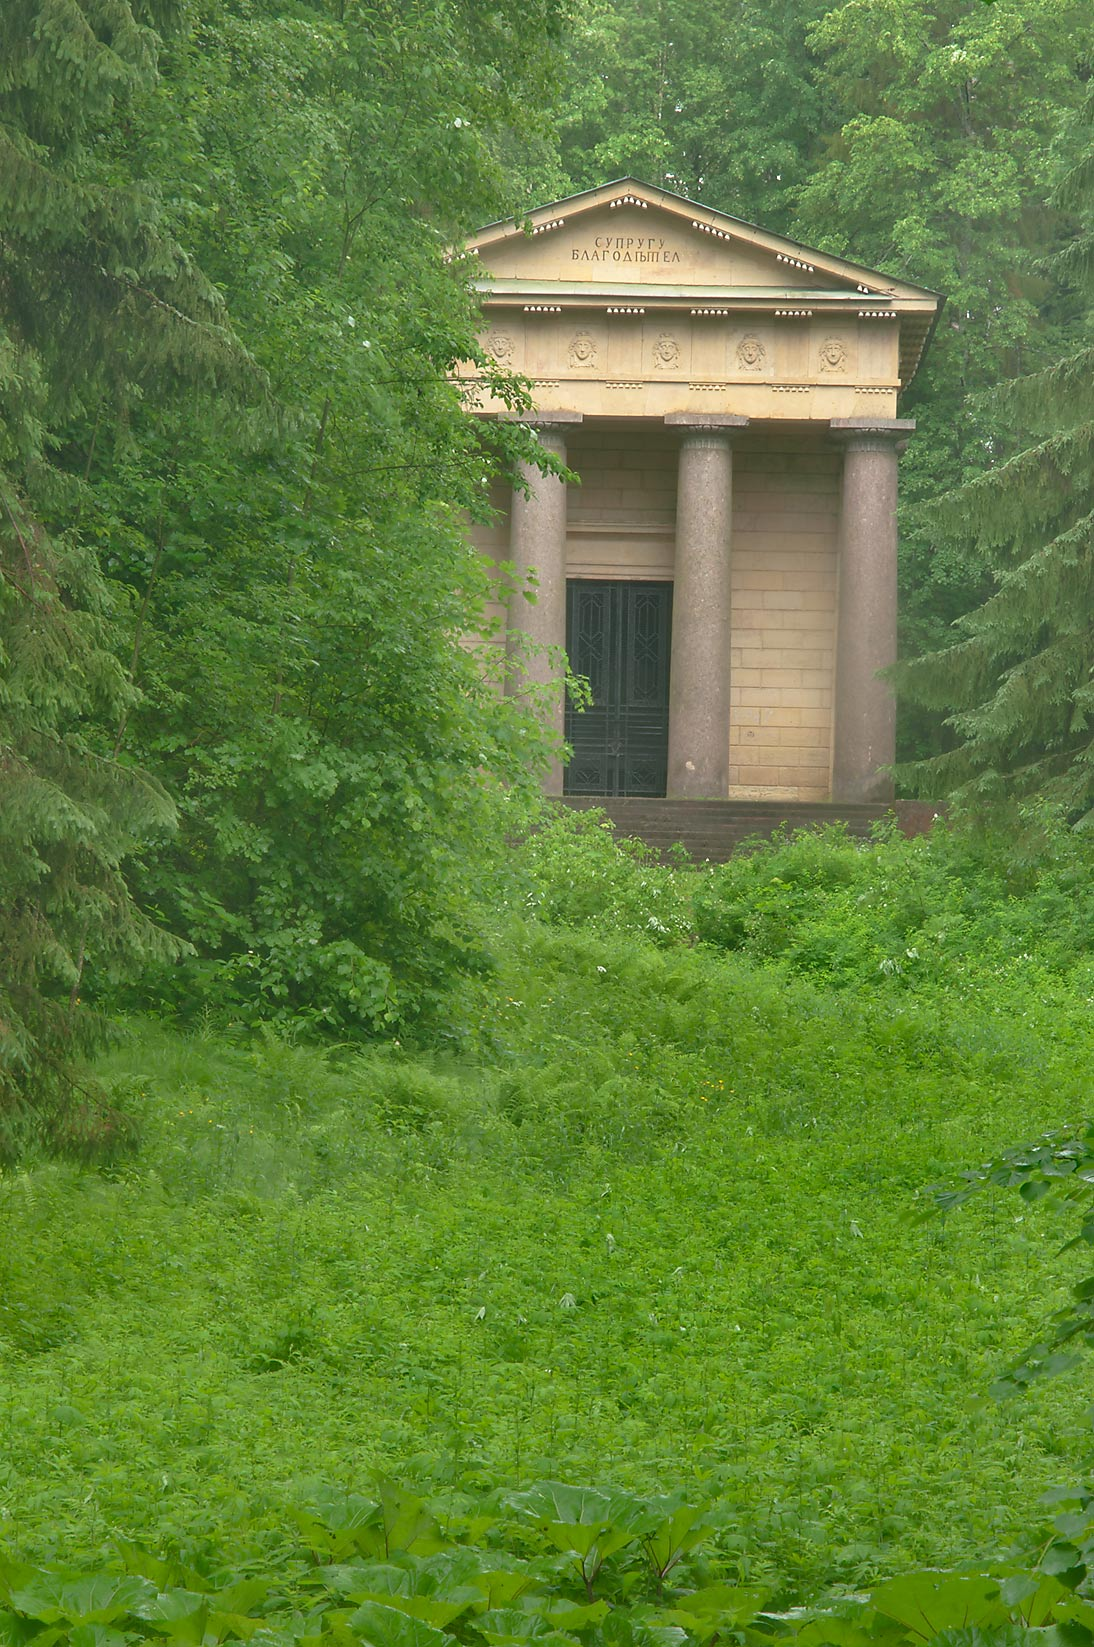 "Mausoleum ""To kind spouse"" in Pavlovsk Park. Pavlovsk, a suburb of St.Petersburg, Russia"